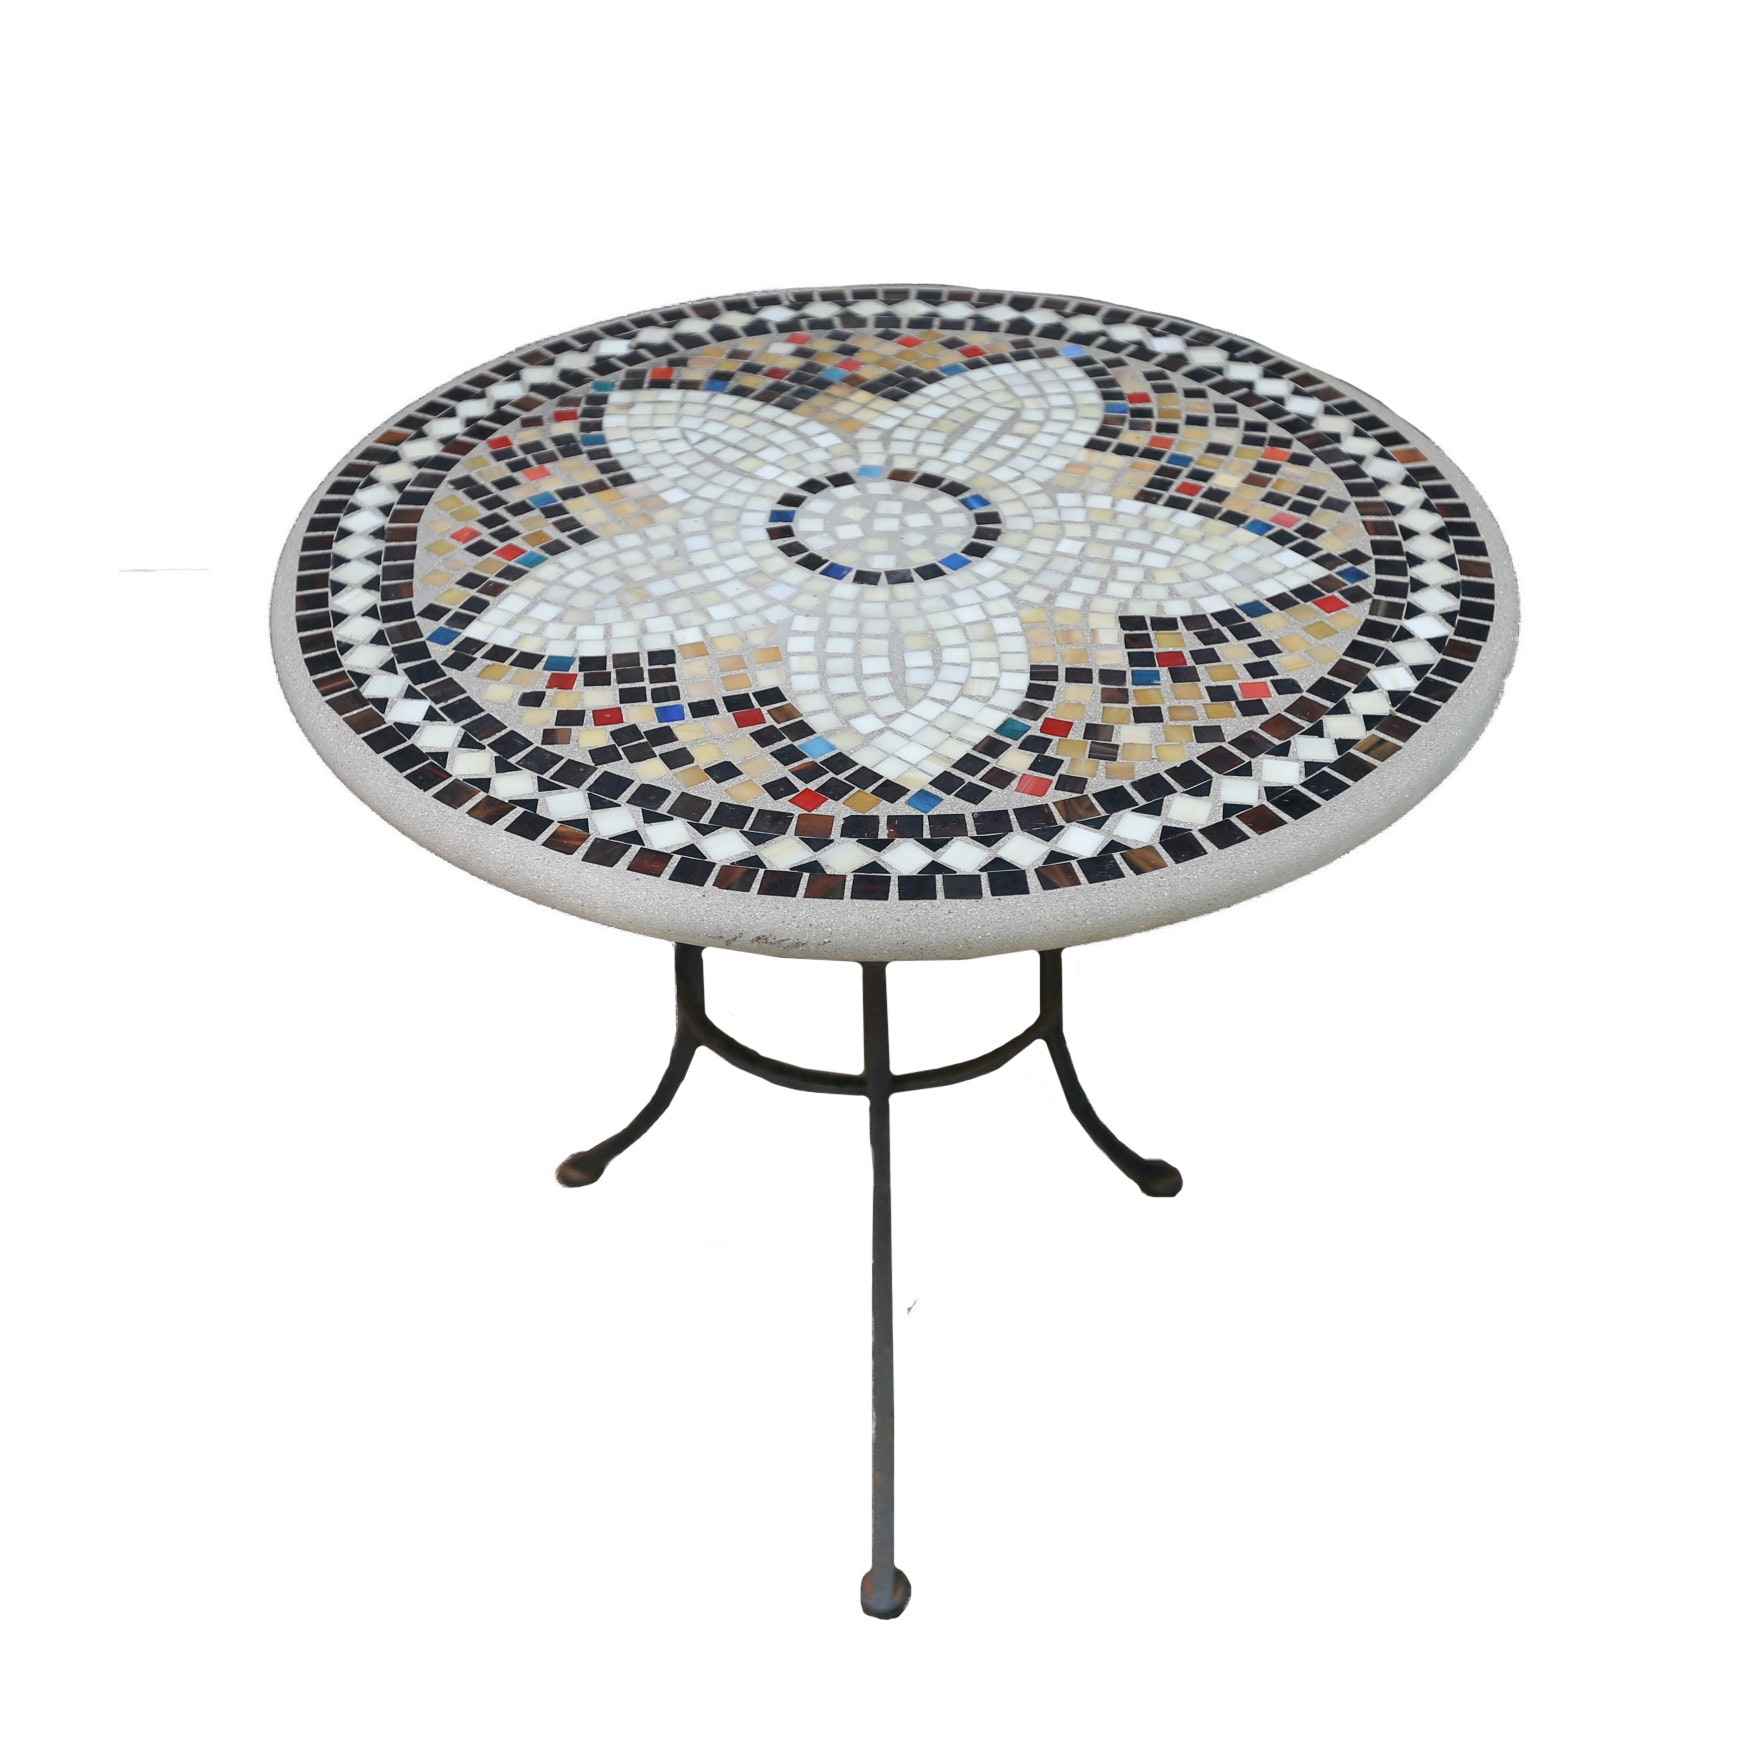 Pair Of Concrete Mosaic Tile Tables ...